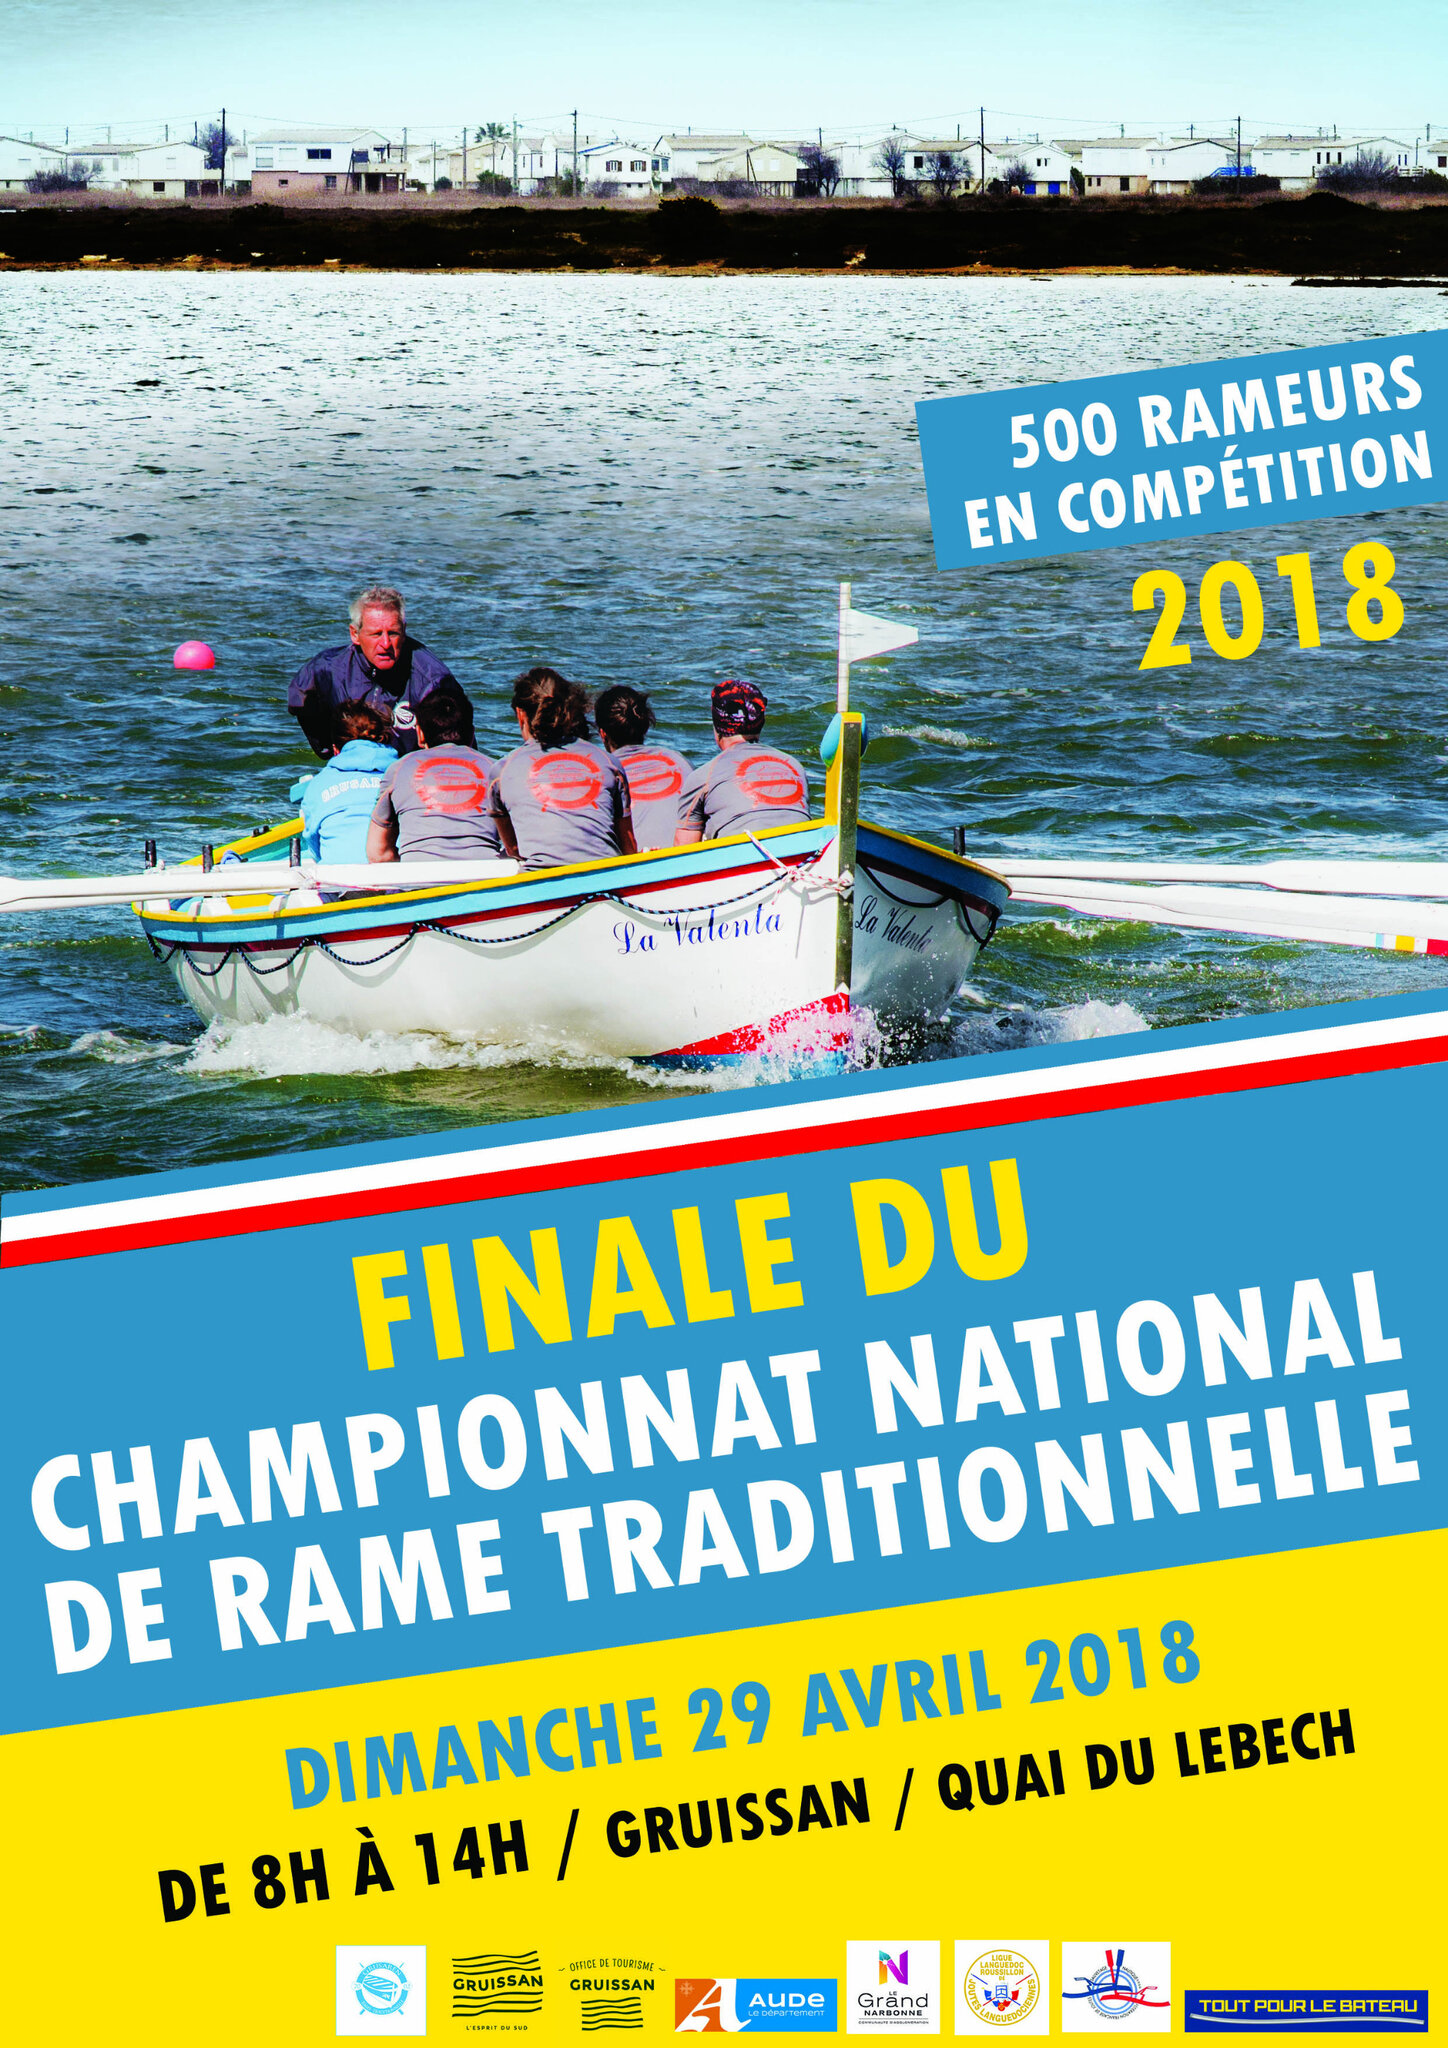 RAME TRADITIONNELLE - CONVOCATION Pour le 28 Avril 2018 - Championat National Gruissan + Tirage